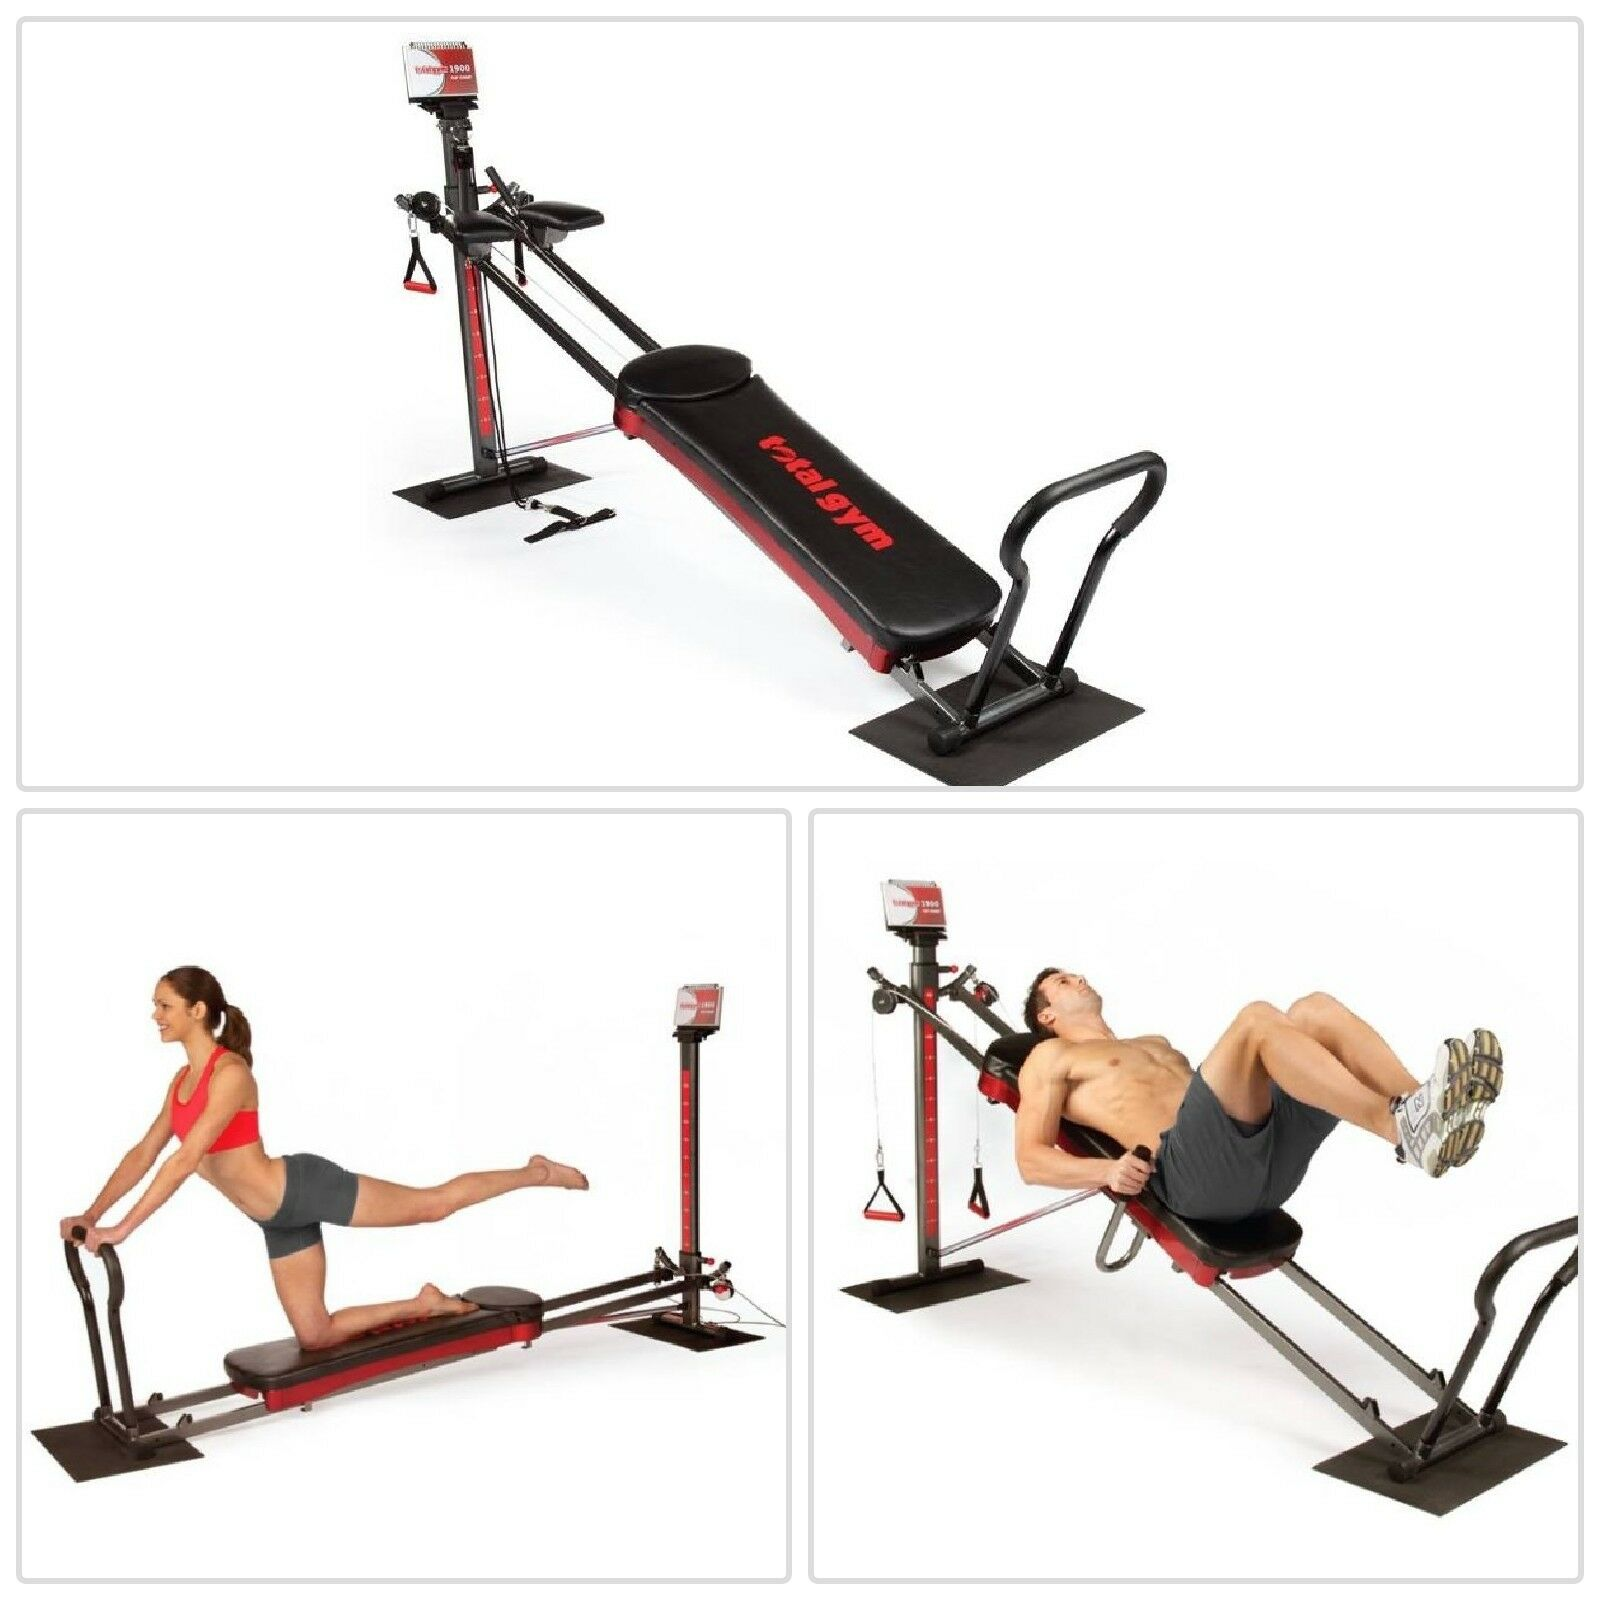 Total Gym 1900 Full Body Resistance Home Gym Training 60 Exercises Easy Storage